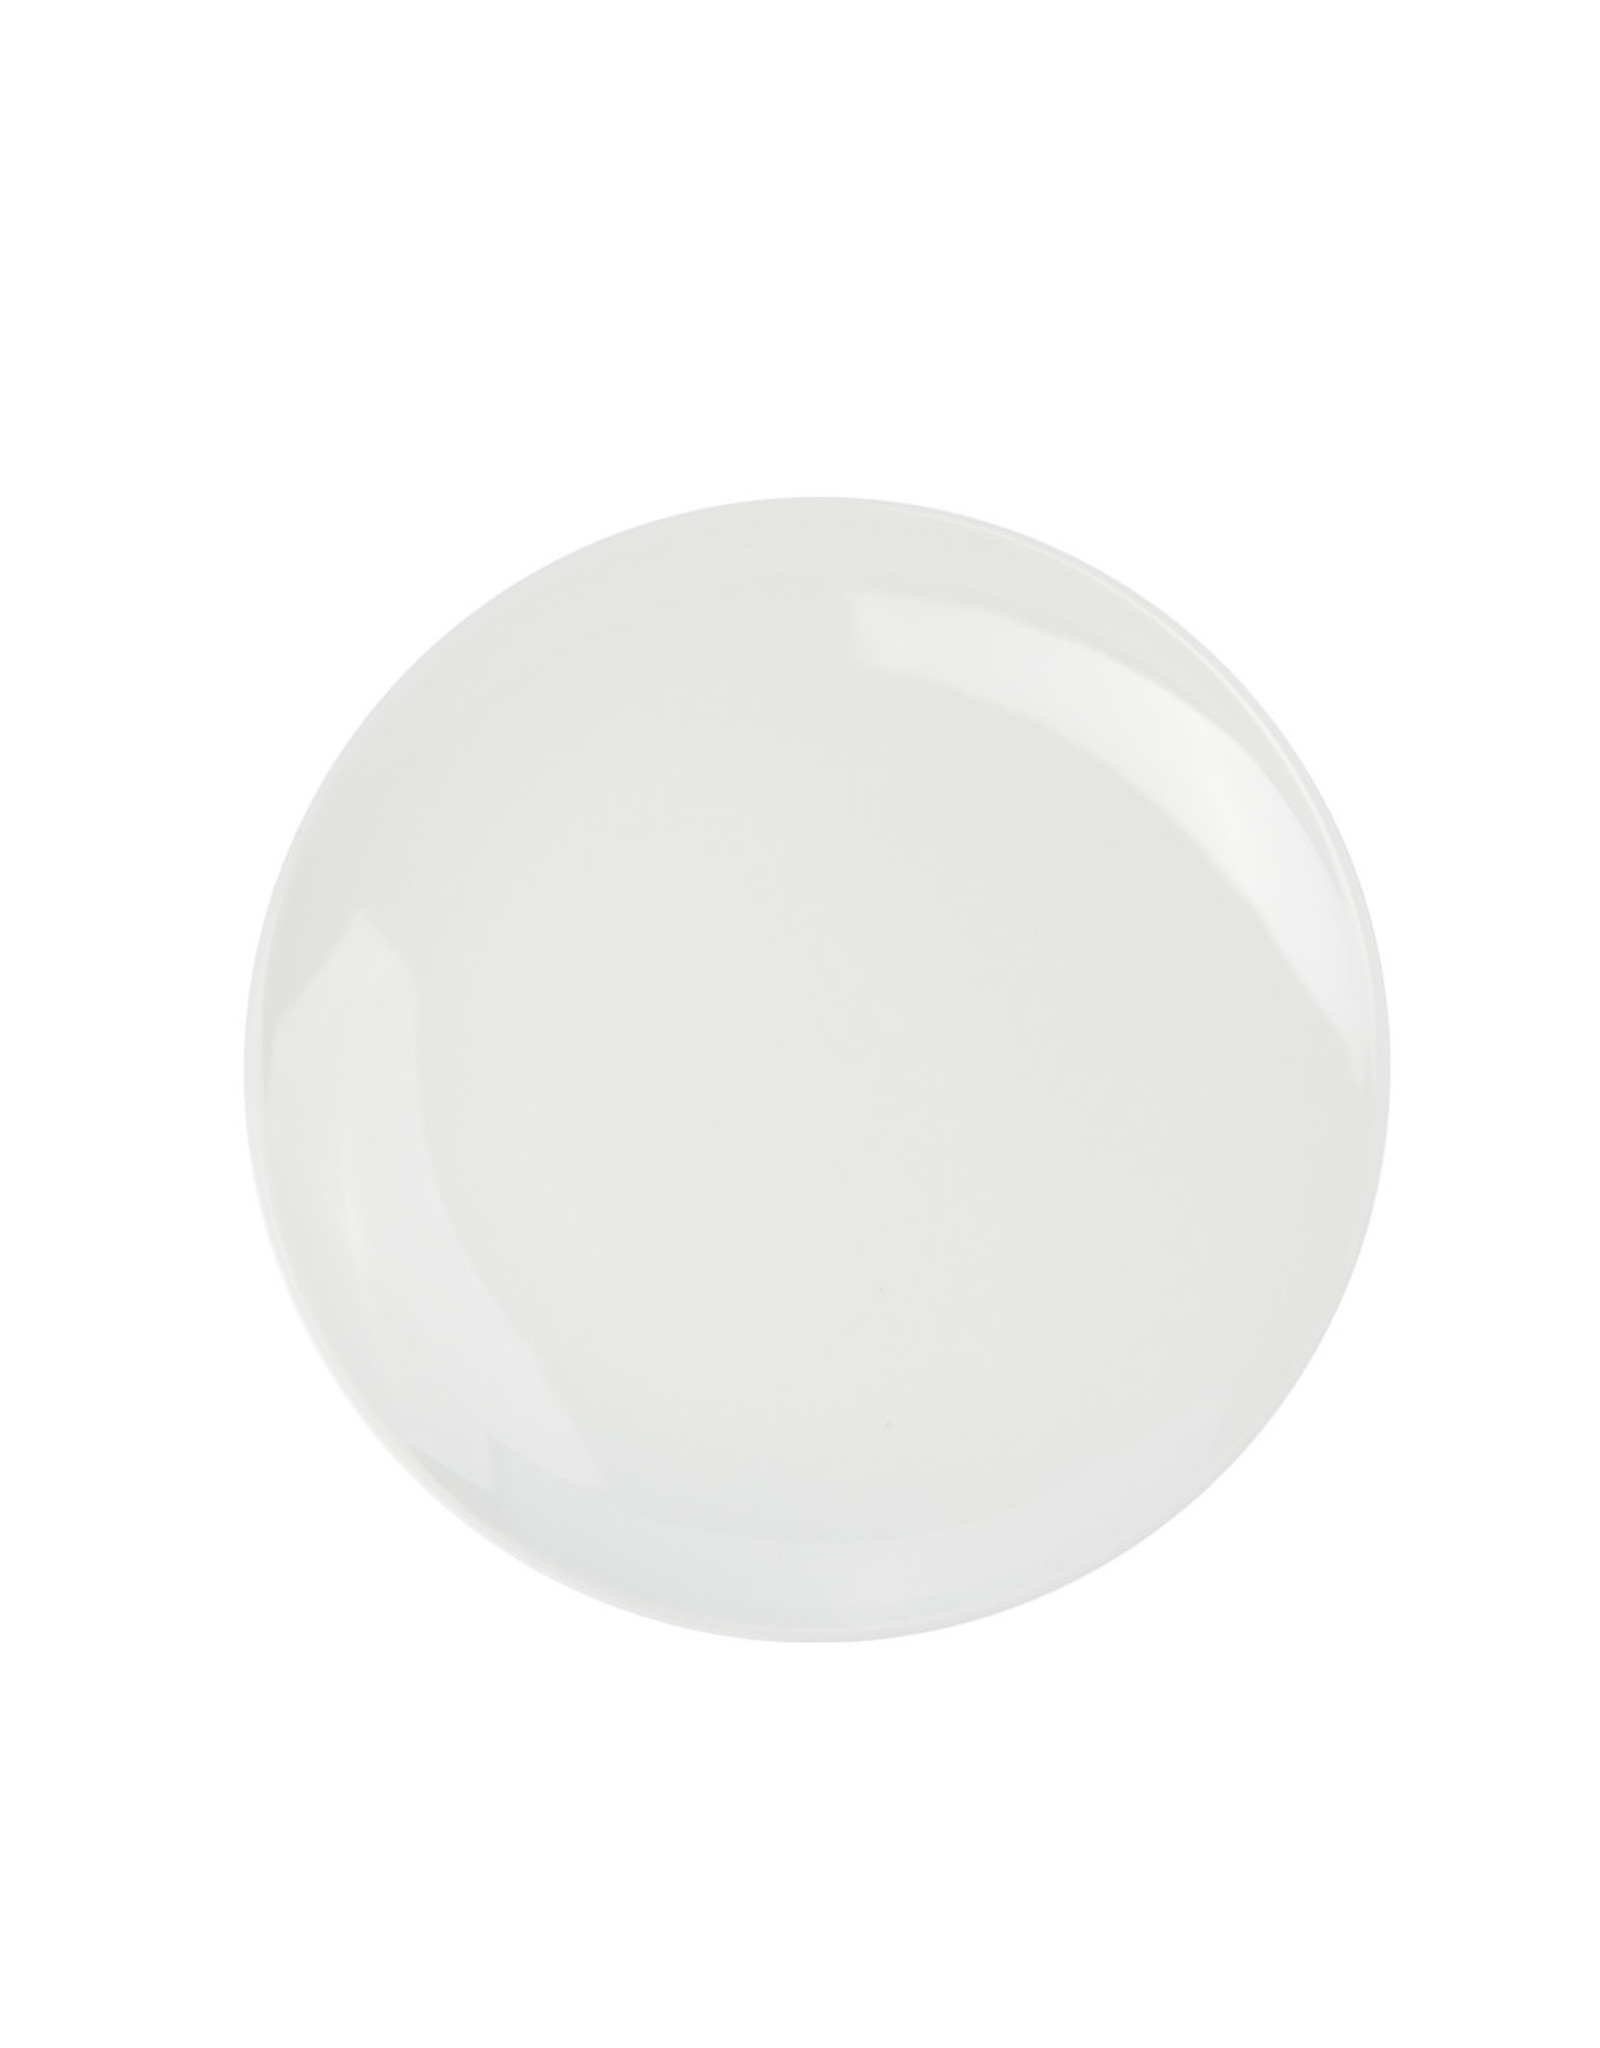 PLATE COUPE SALAD 7.75 INCHES